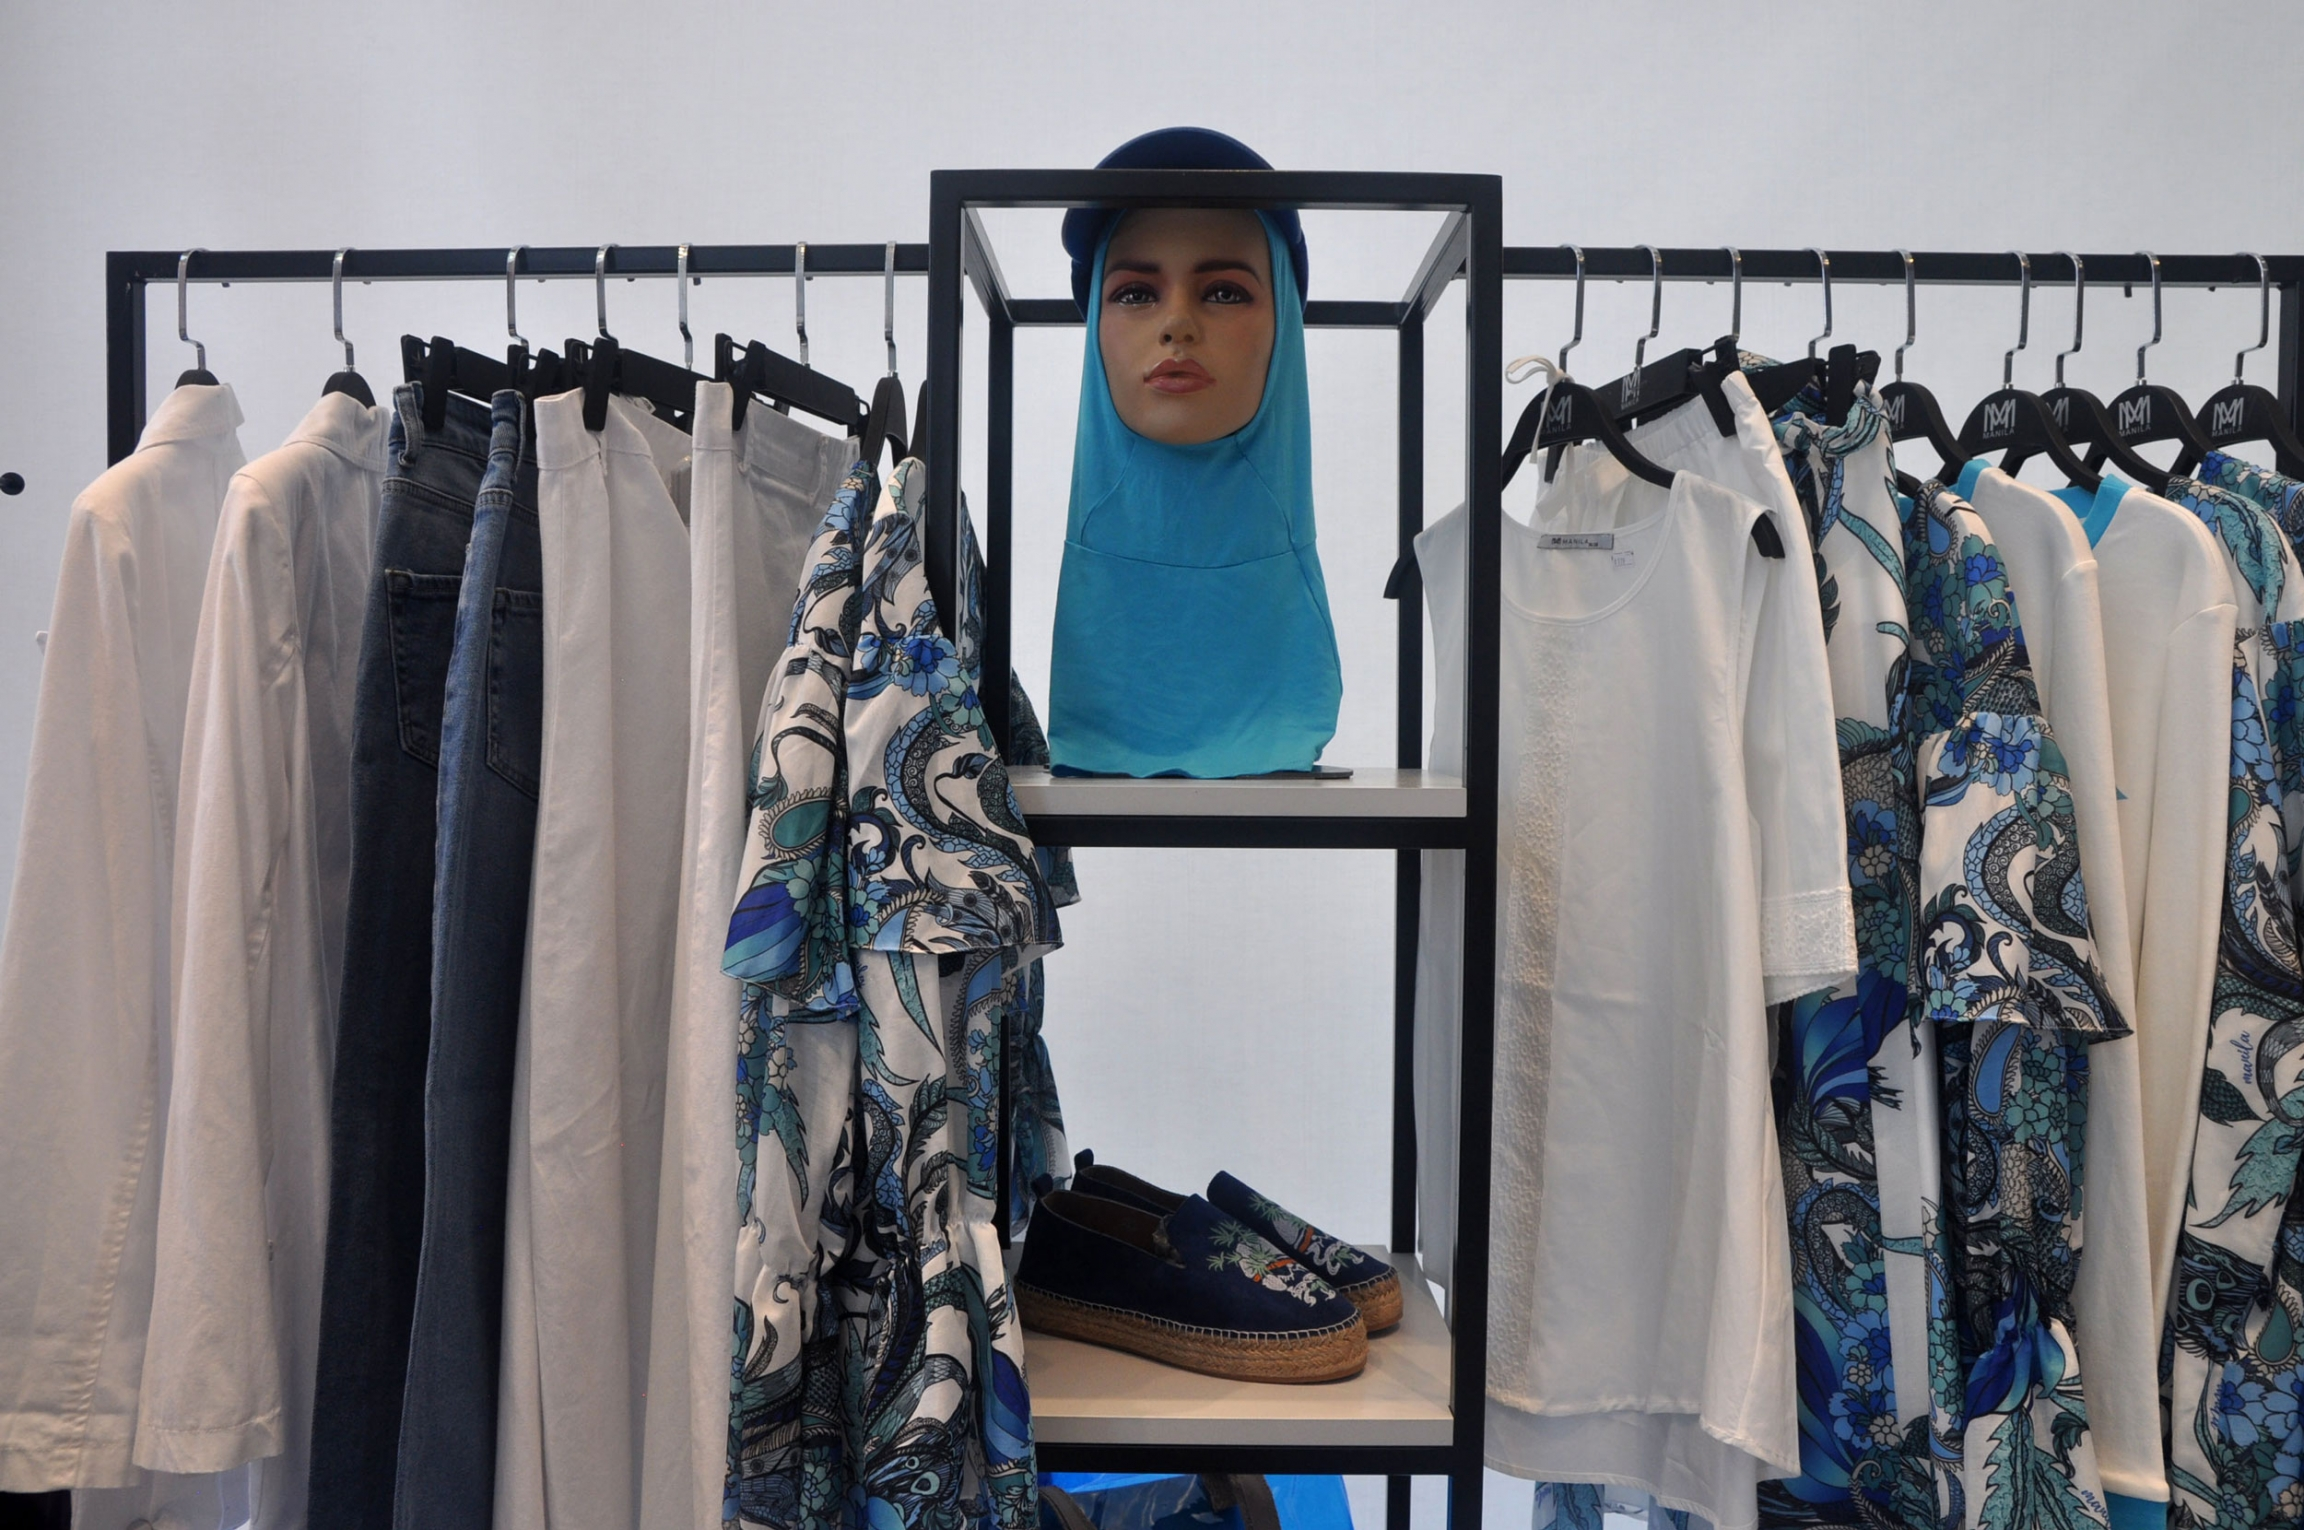 Zeruj Port Shopping Mall in Istanbul is primarily devoted to modest fashion.